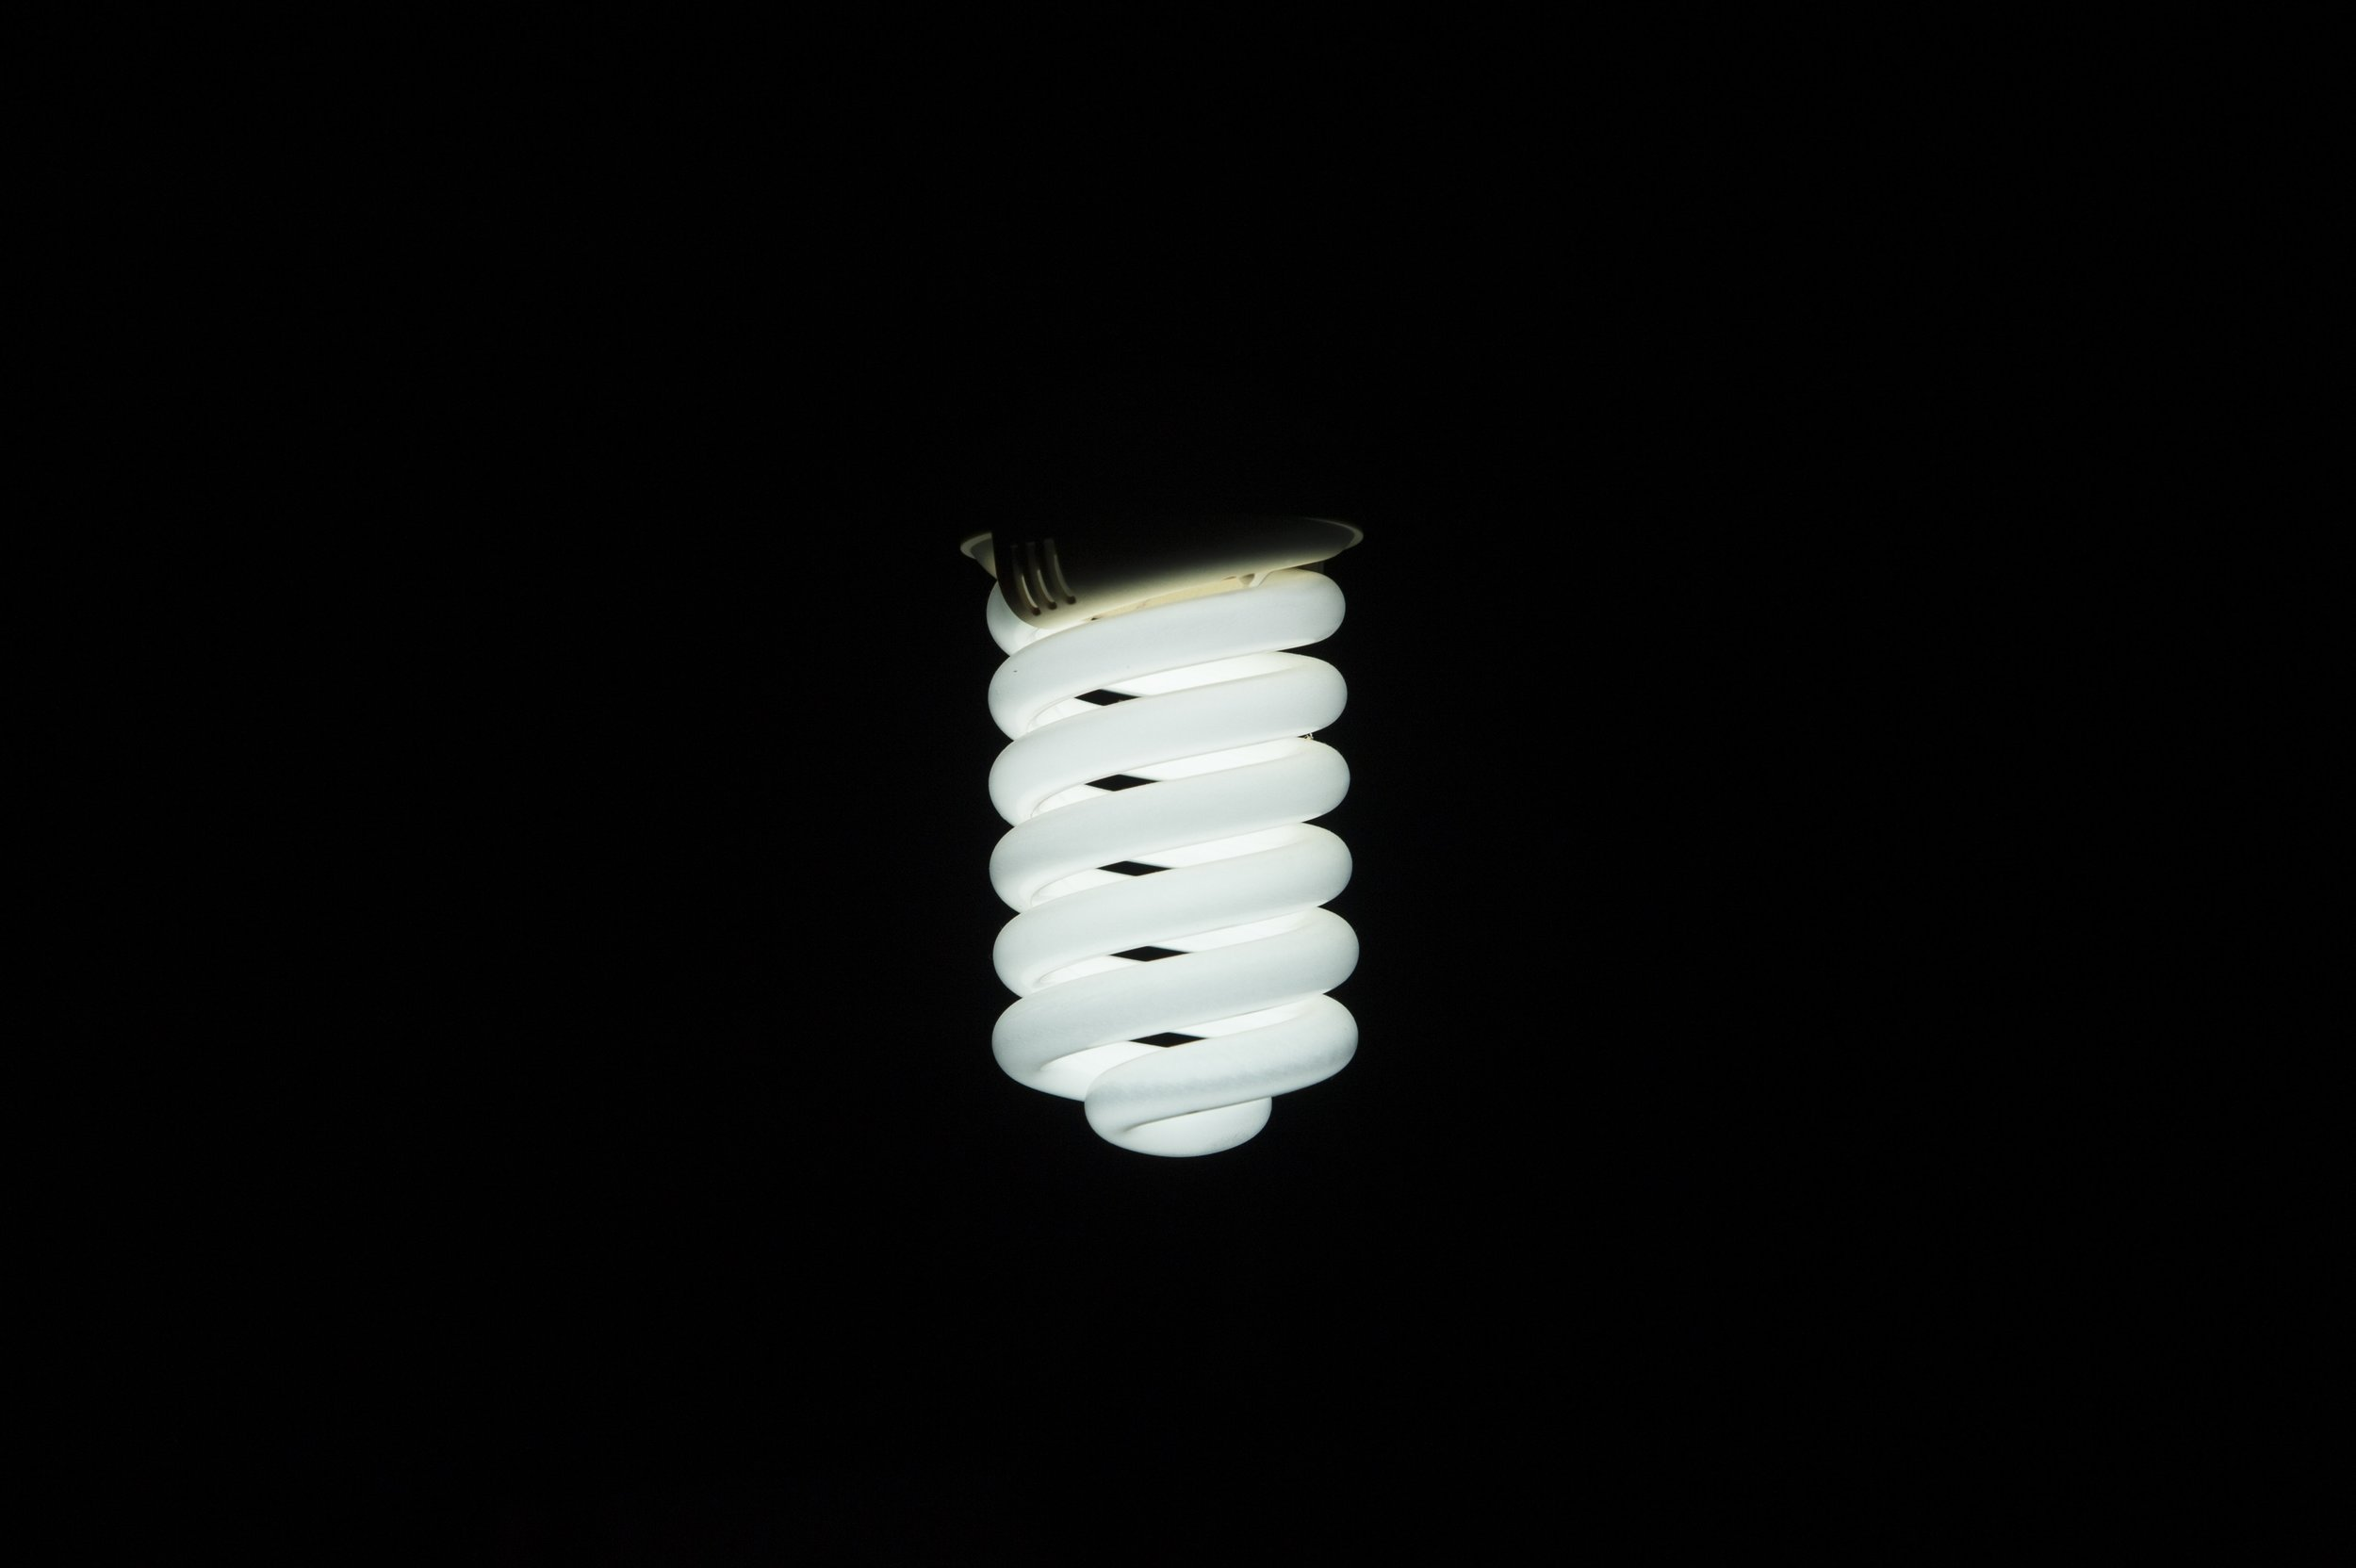 lightbulb.jpeg